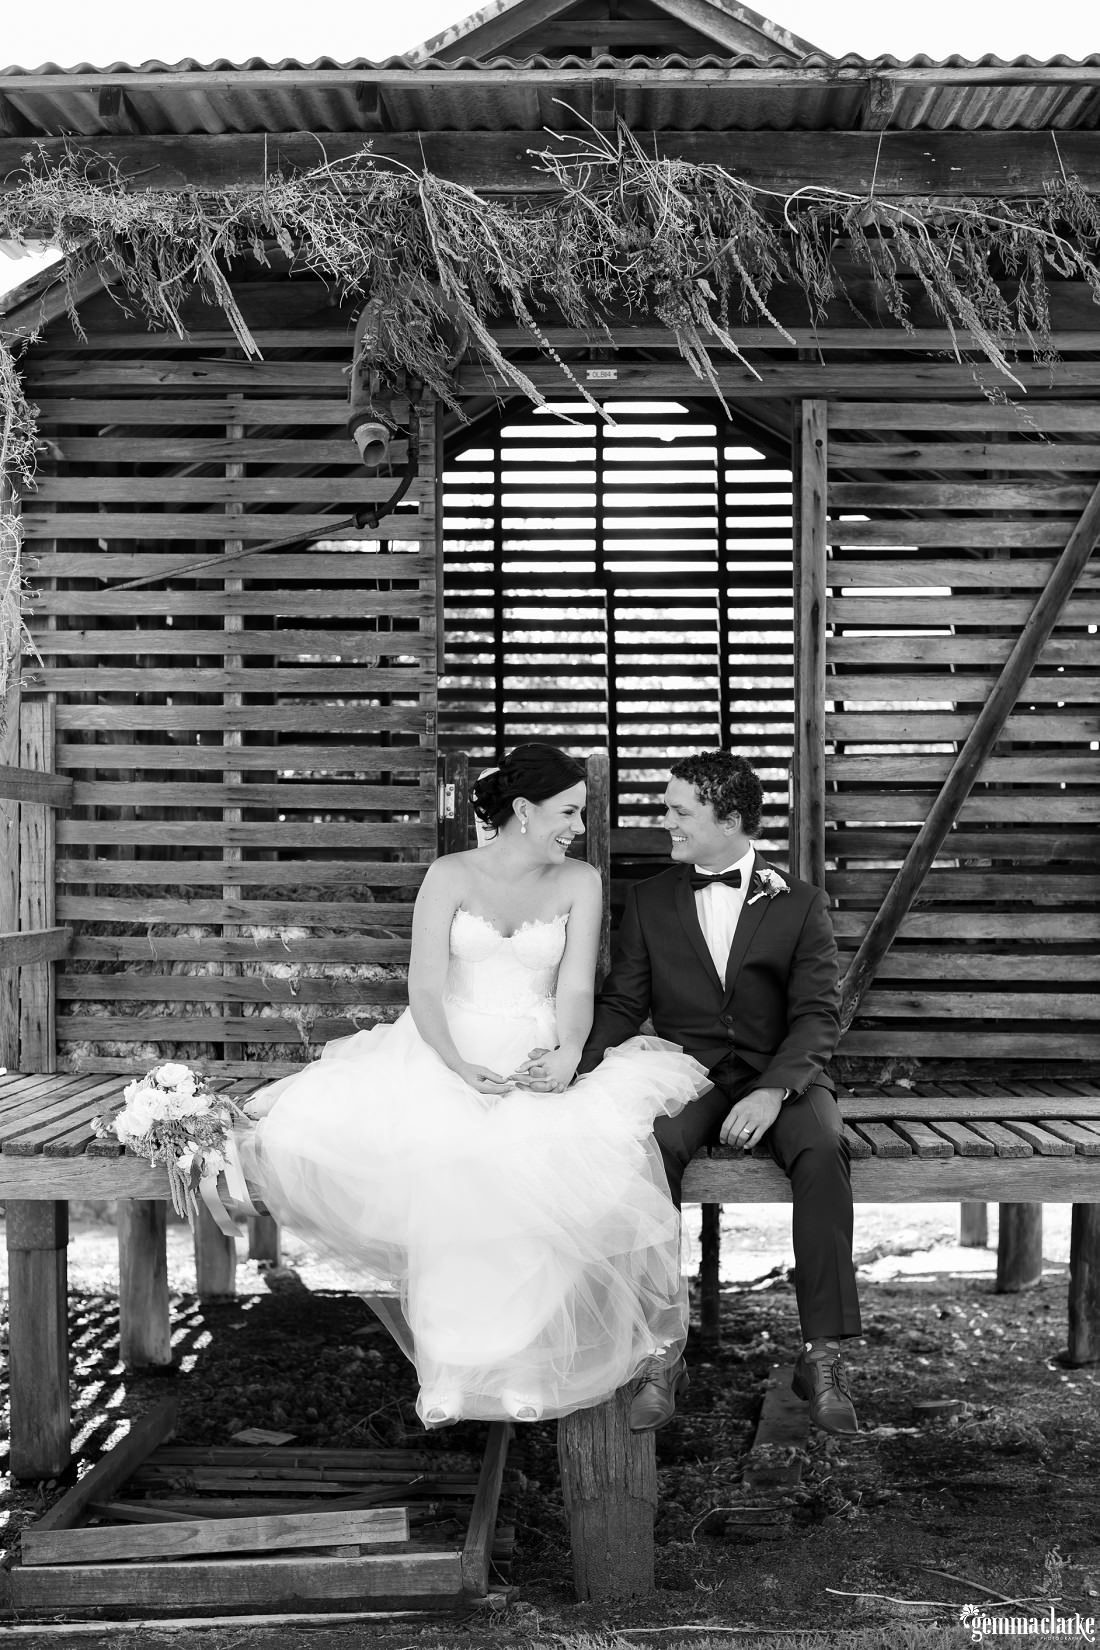 A bride and groom smile at each other and hold hands while sitting on the deck of a small wooden building